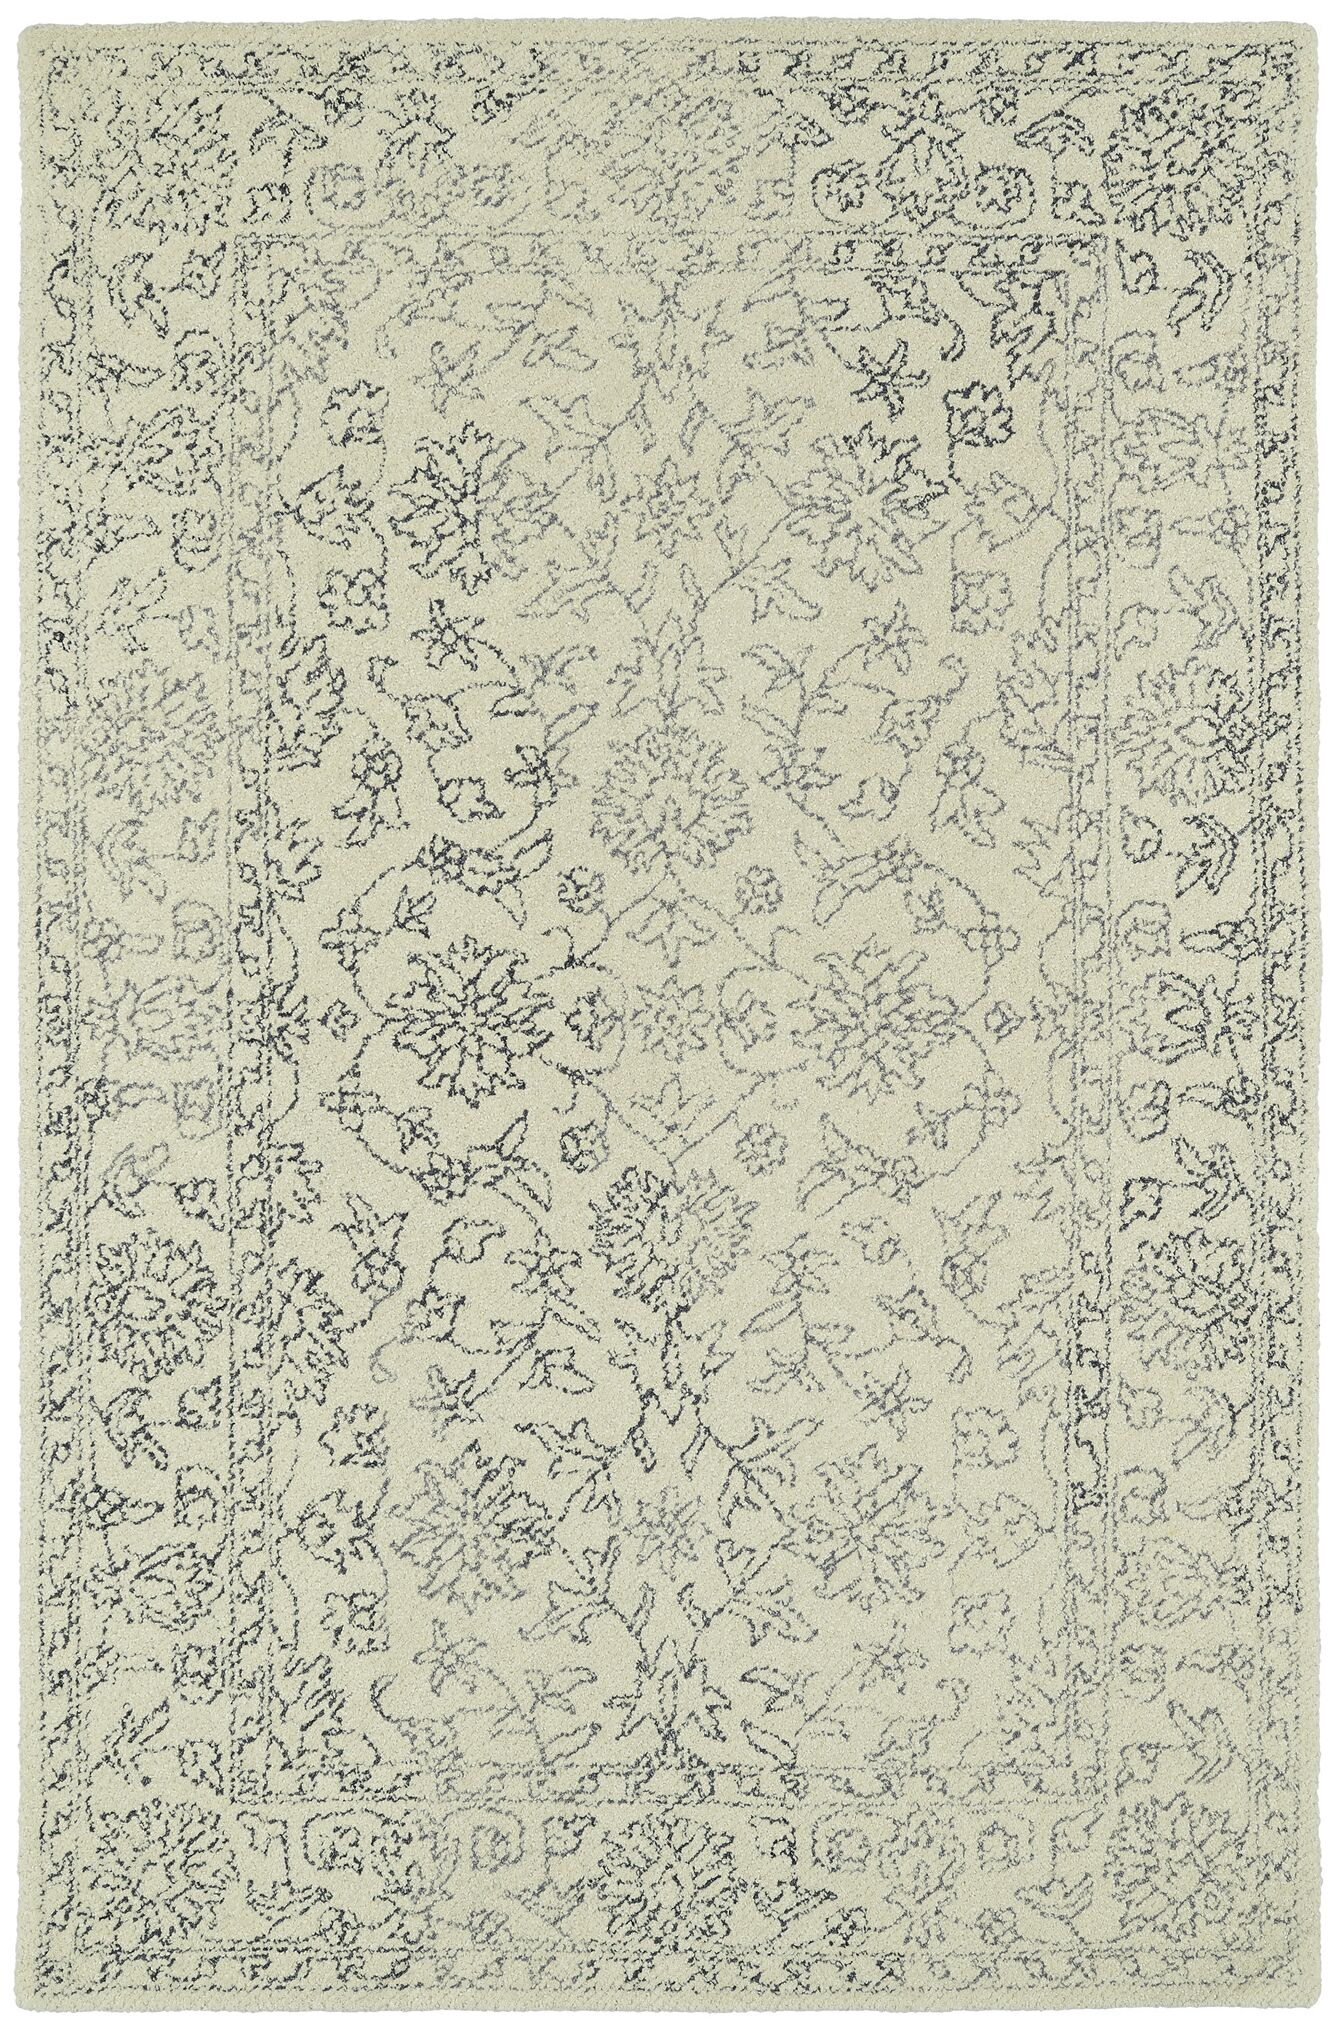 Eugene Hand-Tufted Beige Area Rug Rug Size: Rectangle 9' x 12'